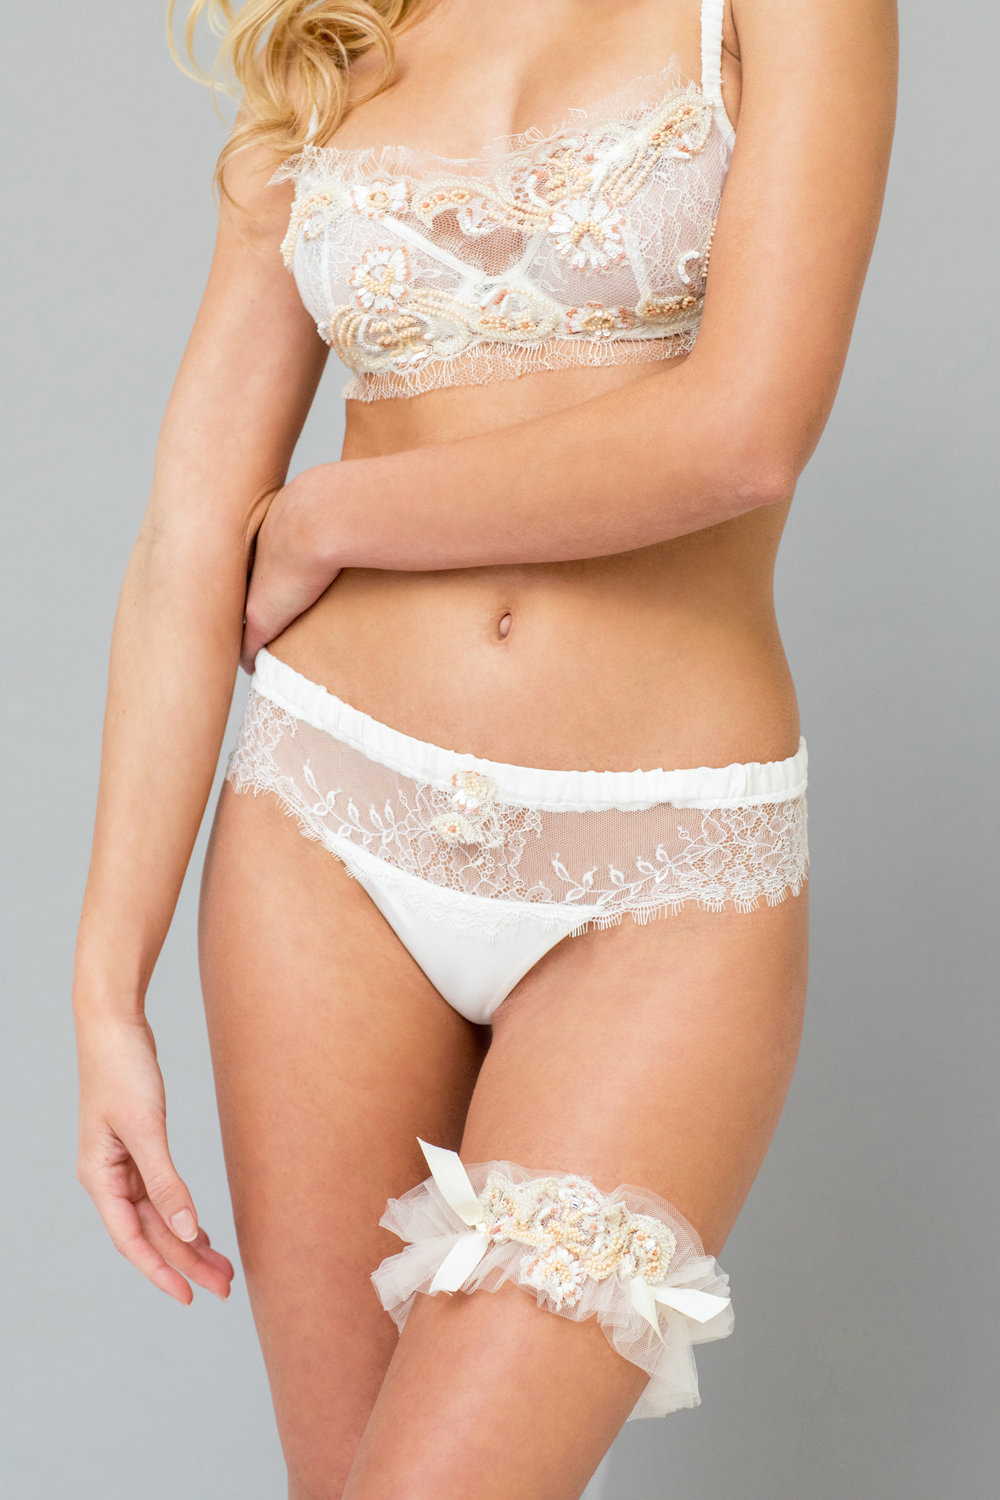 Fleur du Sol Floral Beaded French Lace Set